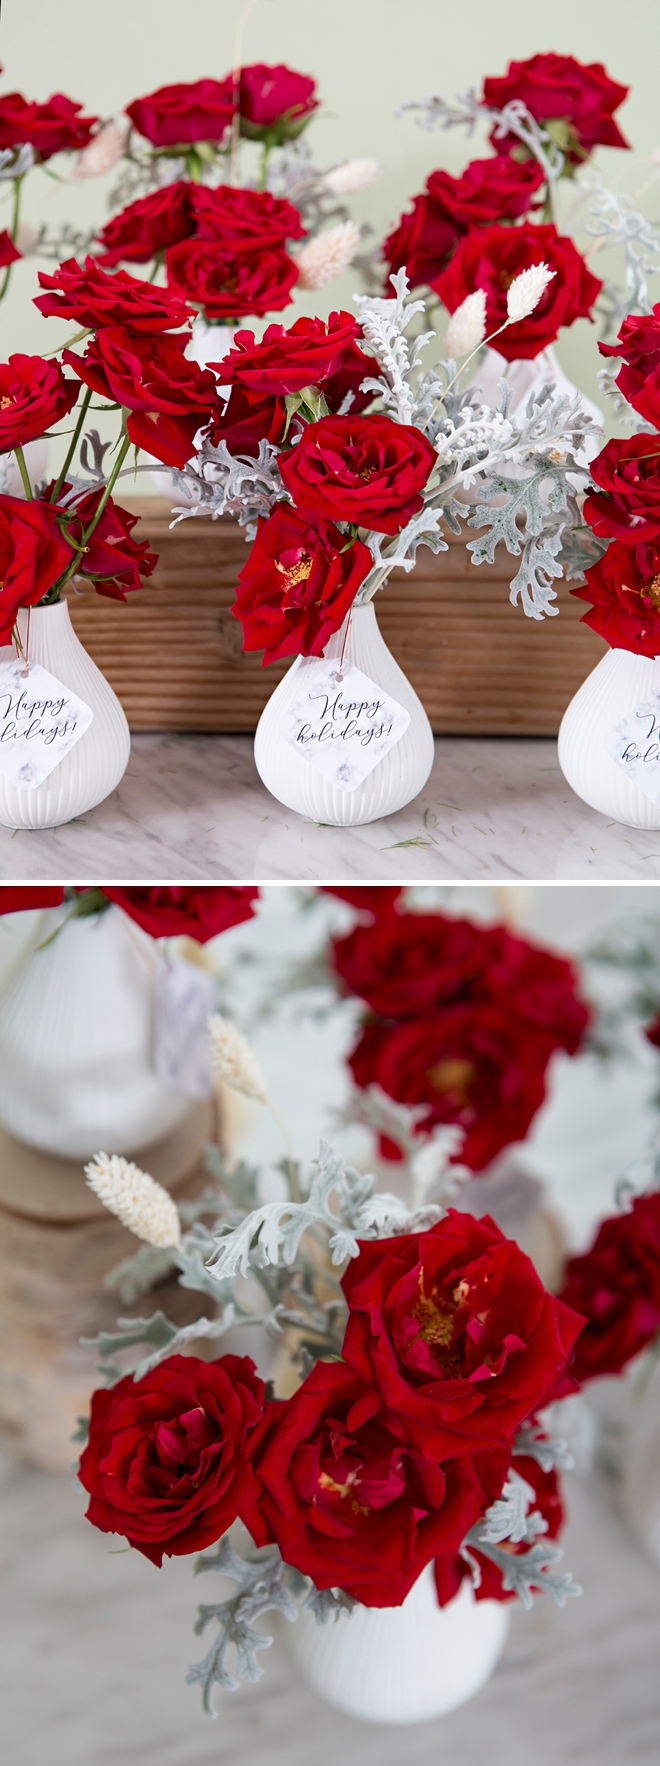 How to make holiday bud vase floral gifts!